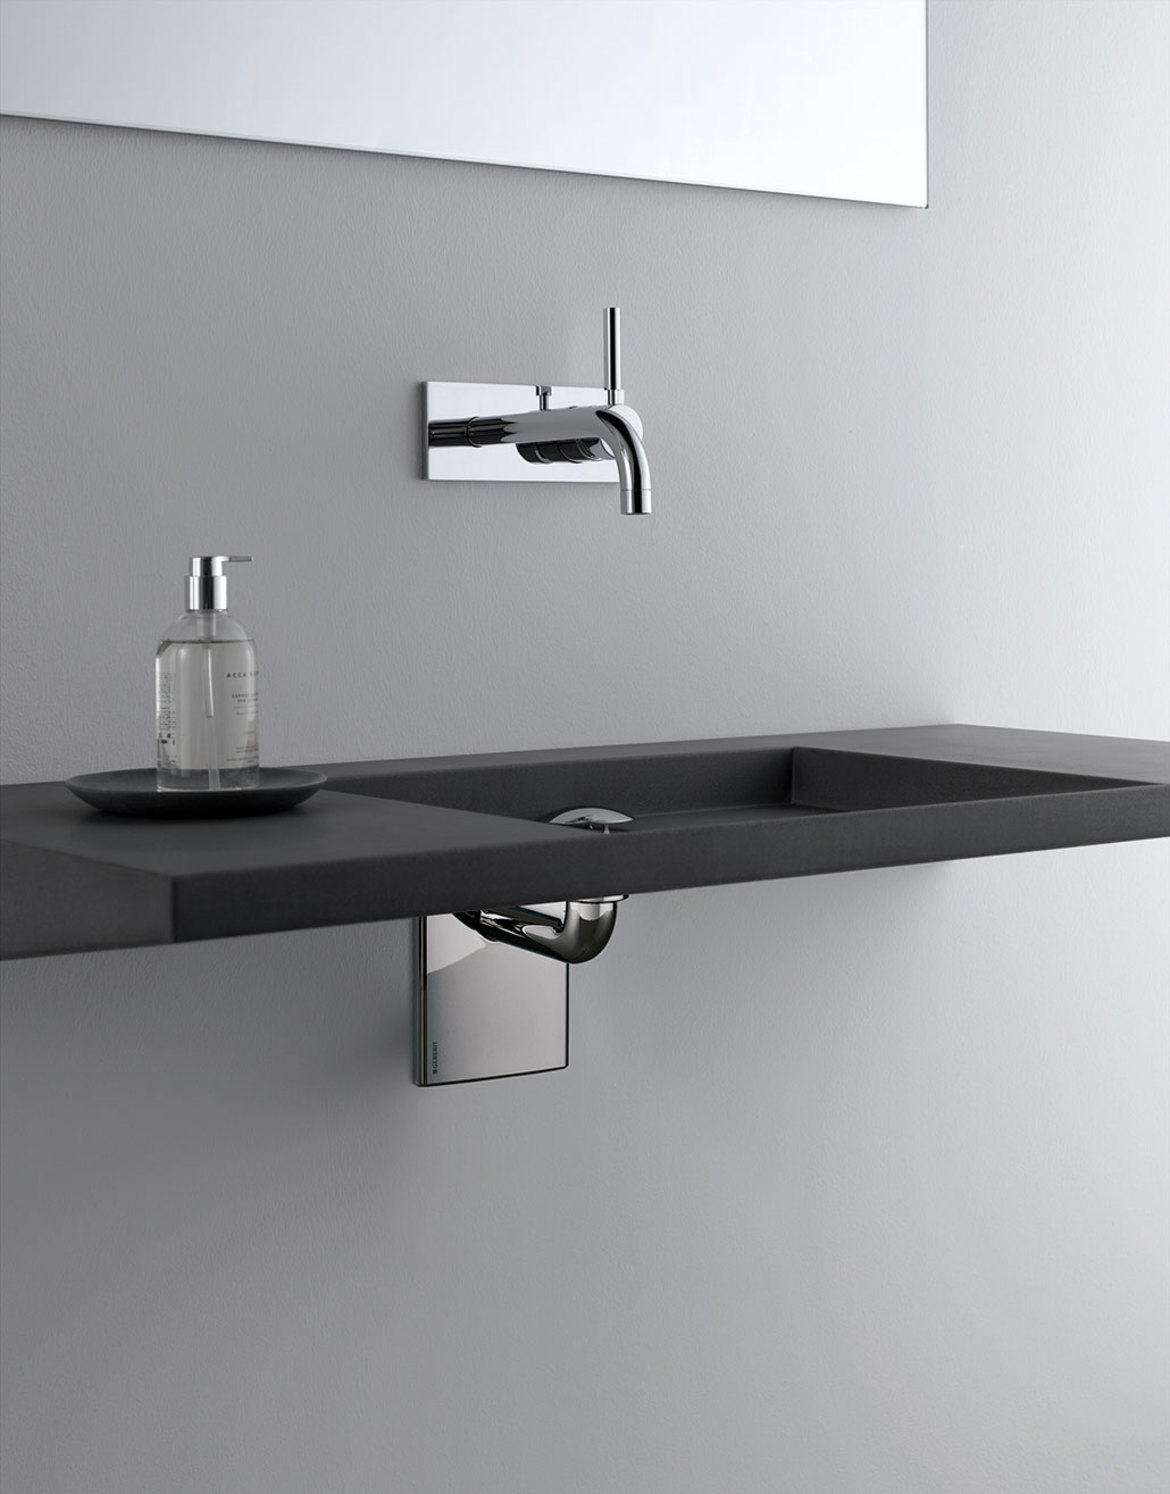 In-wall system for wall-hung lavatory sink | Geberit North America